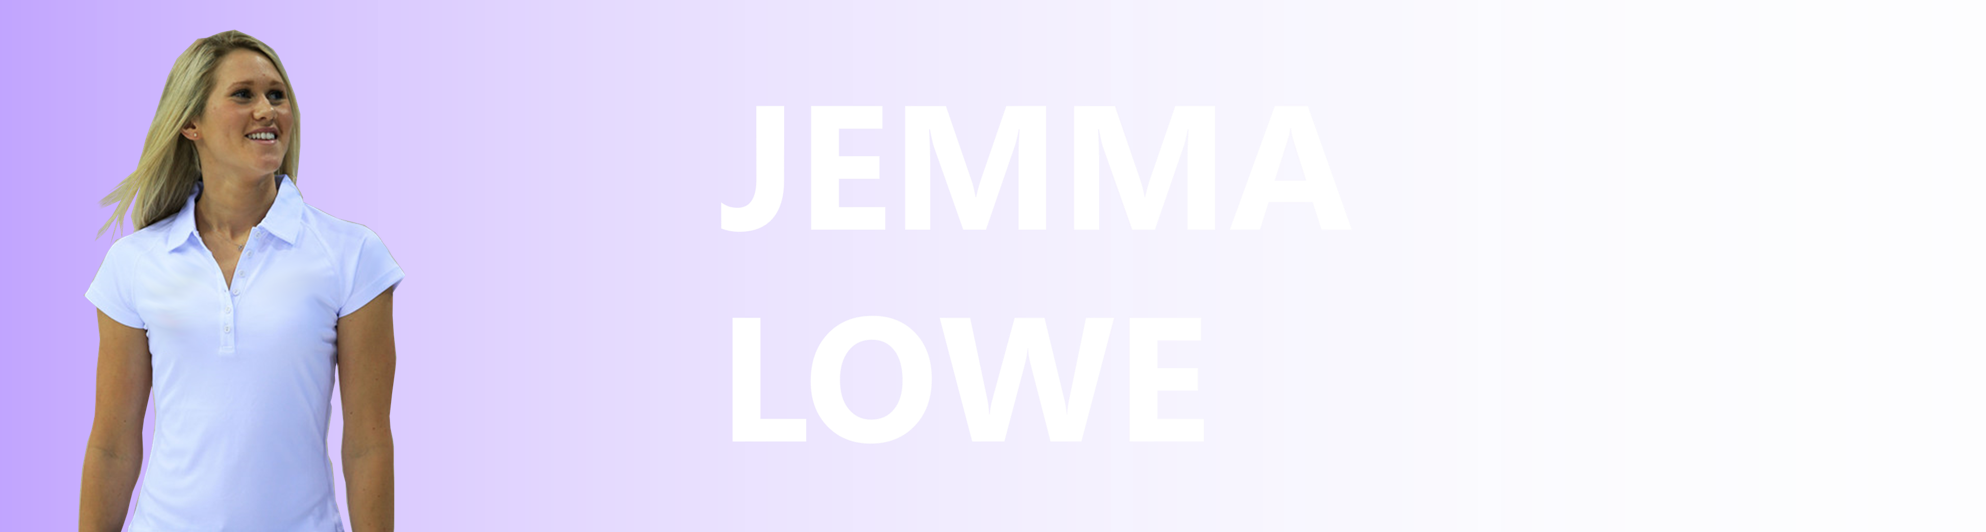 Jemma Lowe SwimPath Team Profile Page